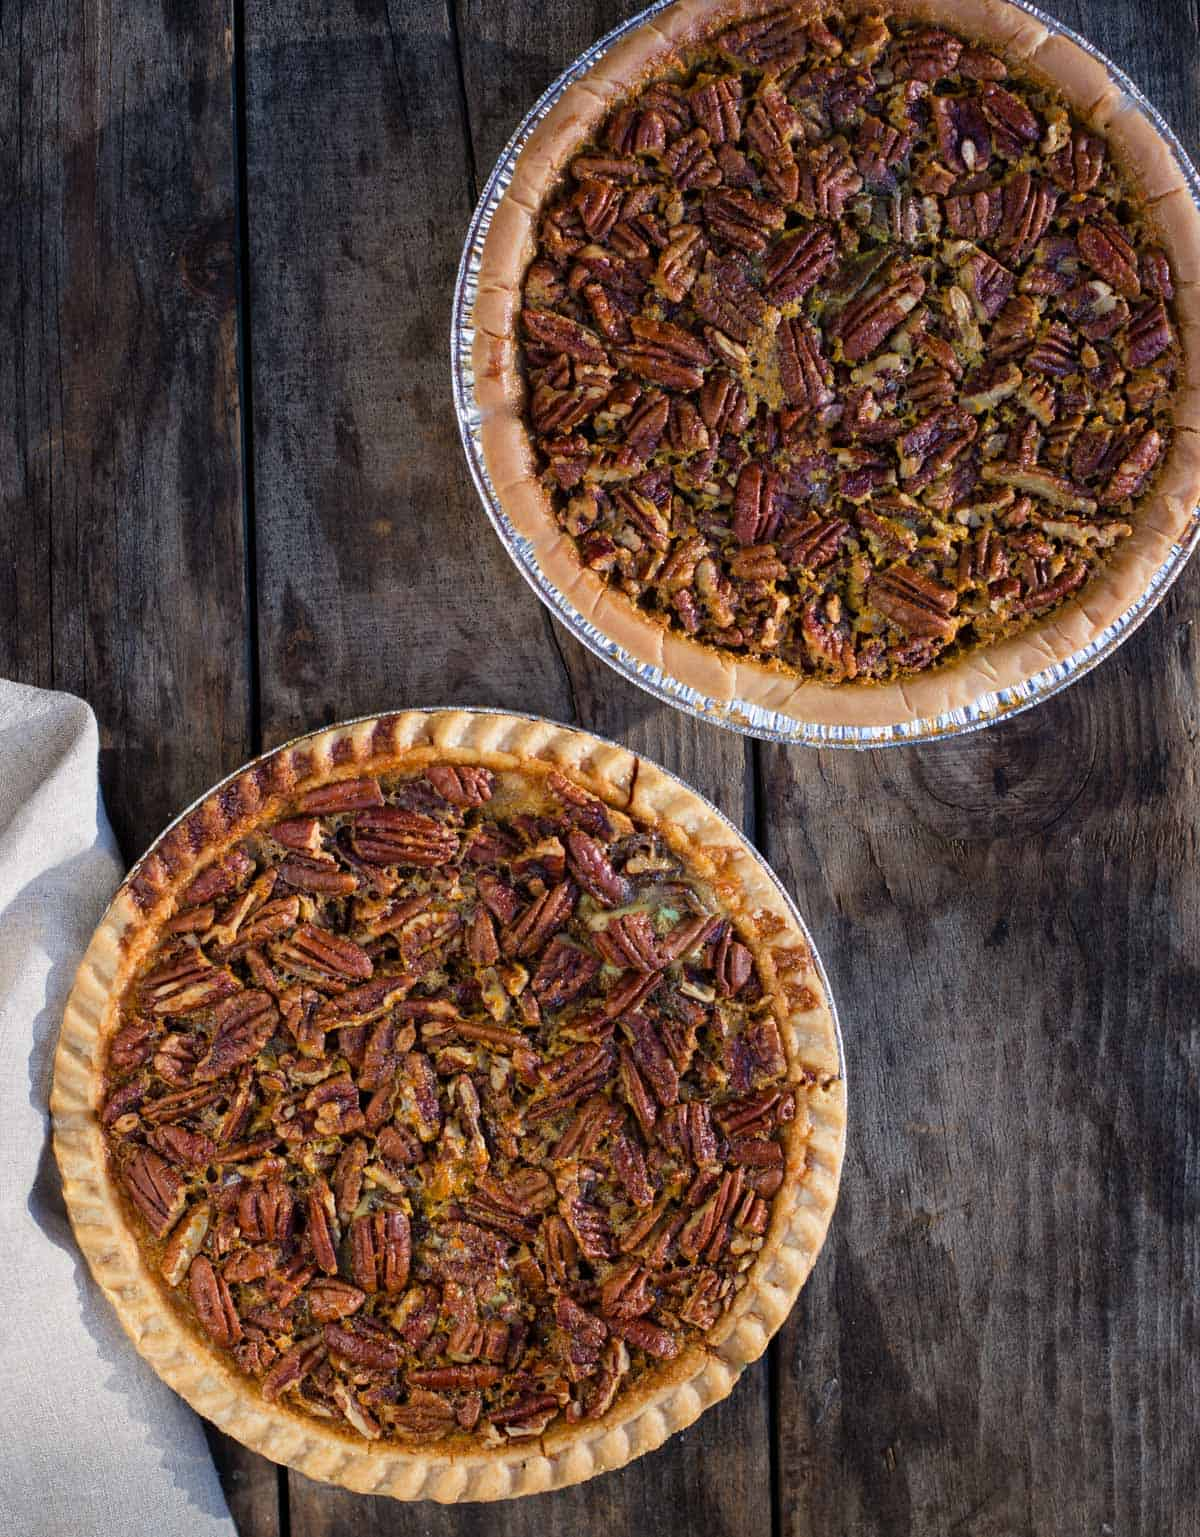 Two pecan pies resting on a wood board